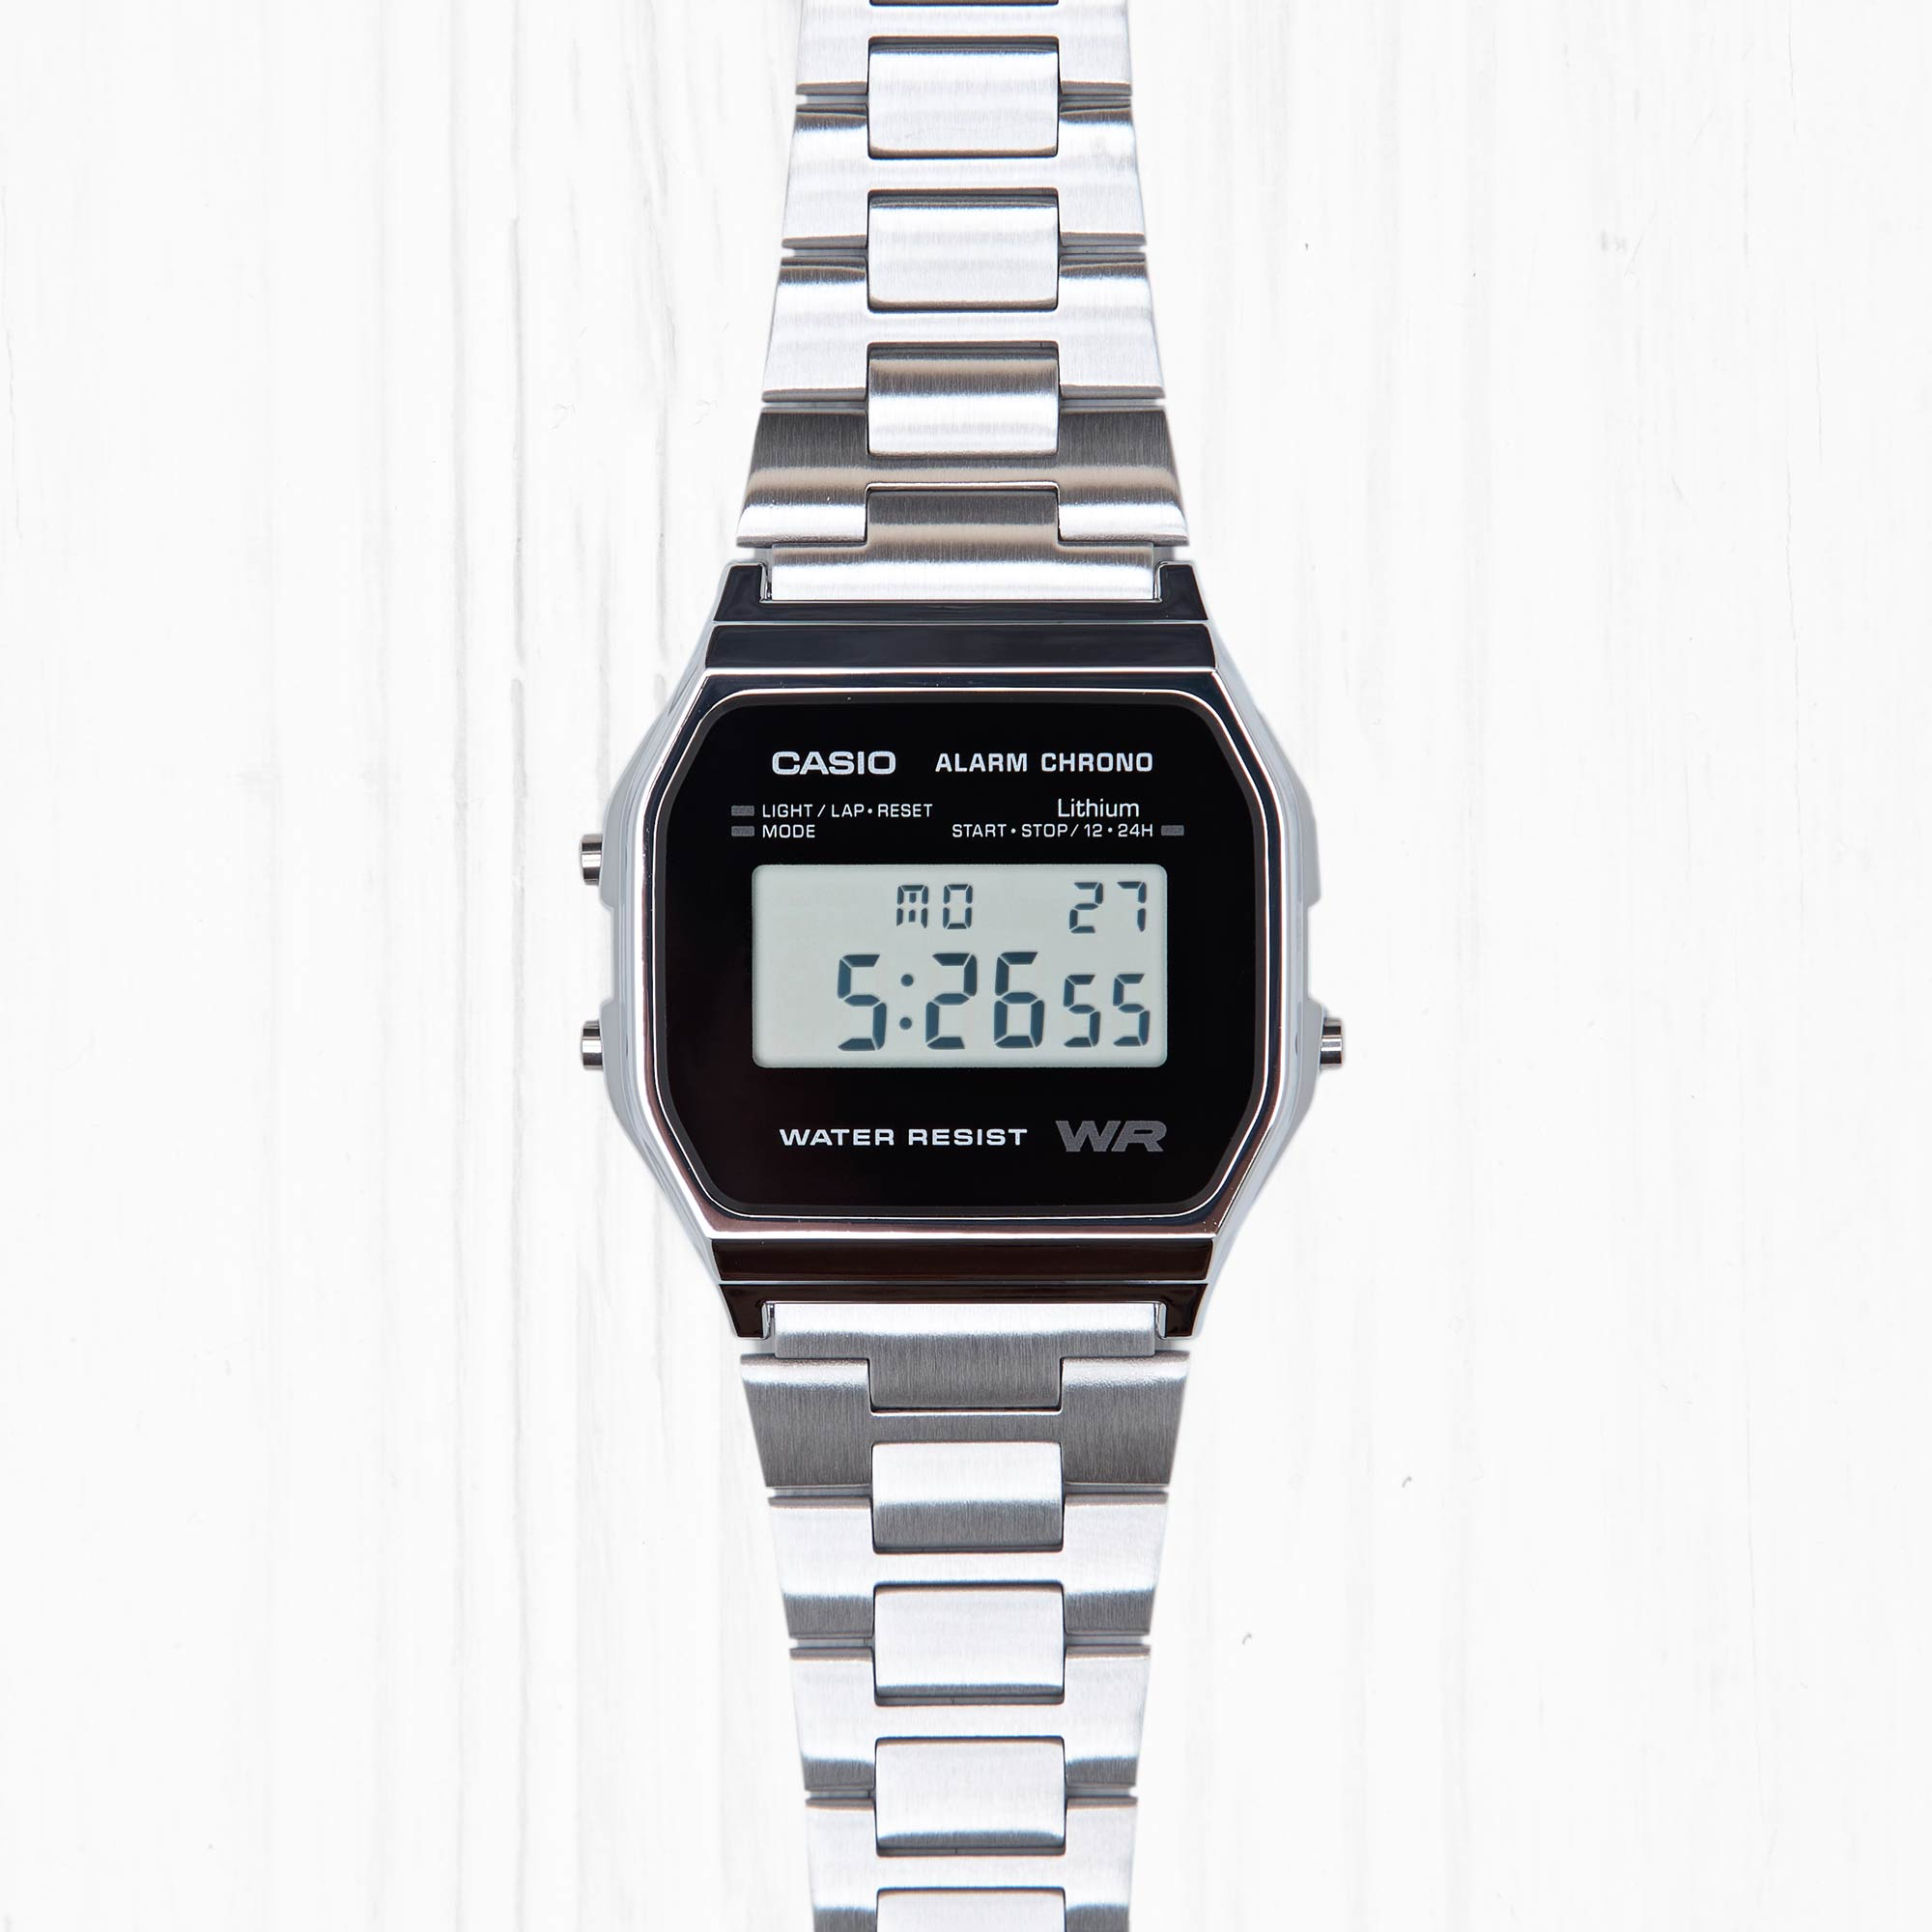 Часы Casio RETRO (A-158WEA-1E) Silver-Black